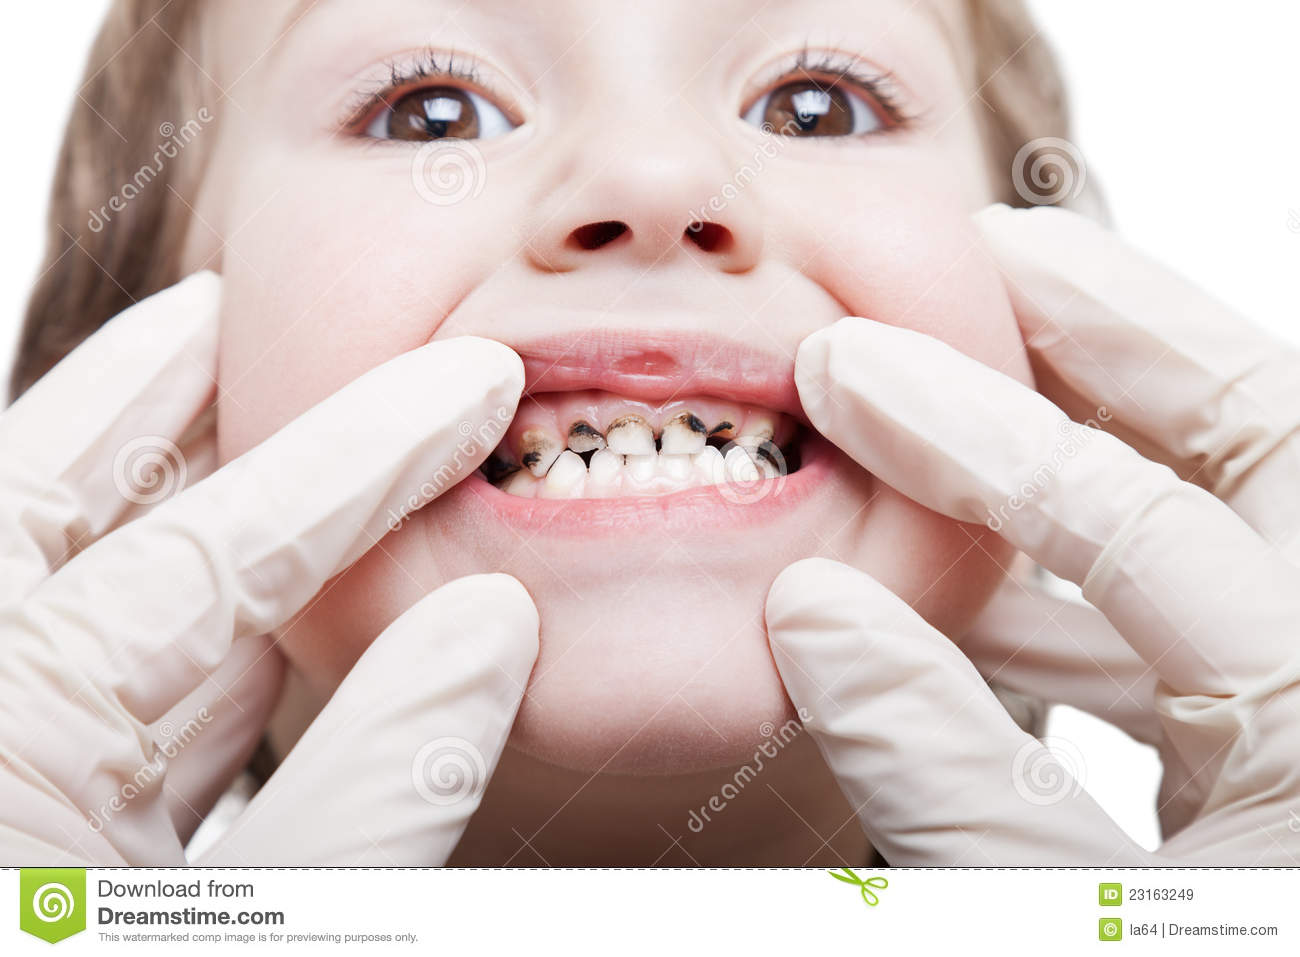 White Spot Lesions together with Decayed Tooth further How To Make Brushing Teeth Fun For Your Kids besides Risk Tooth Decay in addition Maryland Bridges. on early childhood caries